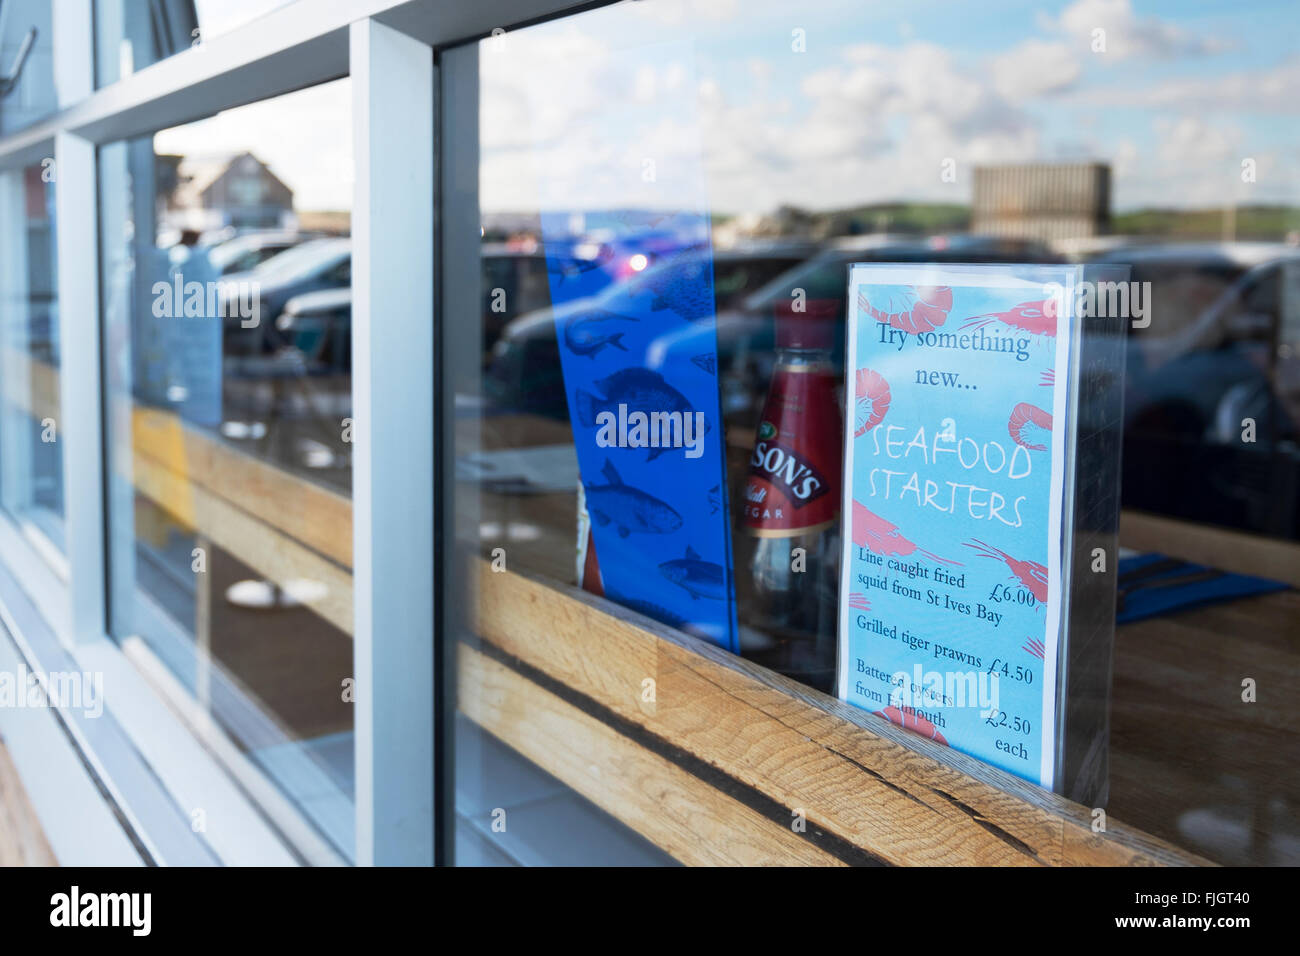 Rick stein 39 s fish and chip shop in padstow cornwall uk for Rick s fish and pet